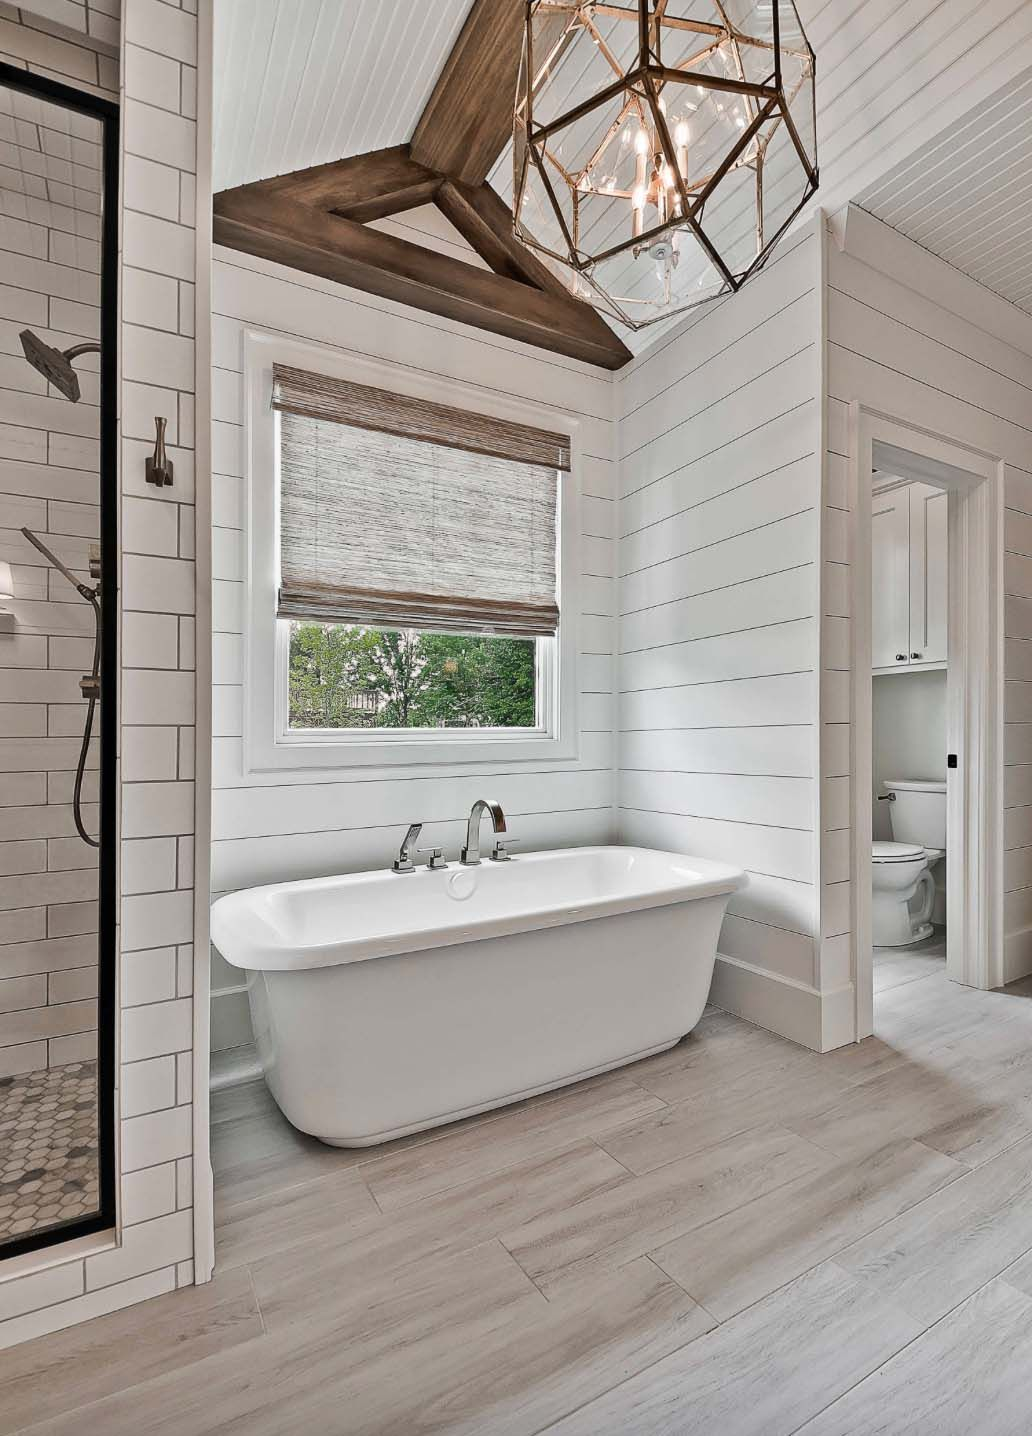 Welcoming Craftsman Style Home With Farmhouse Touches In Arkansas Country Bathroom Designs Bathroom Remodel Master Master Bathroom Design